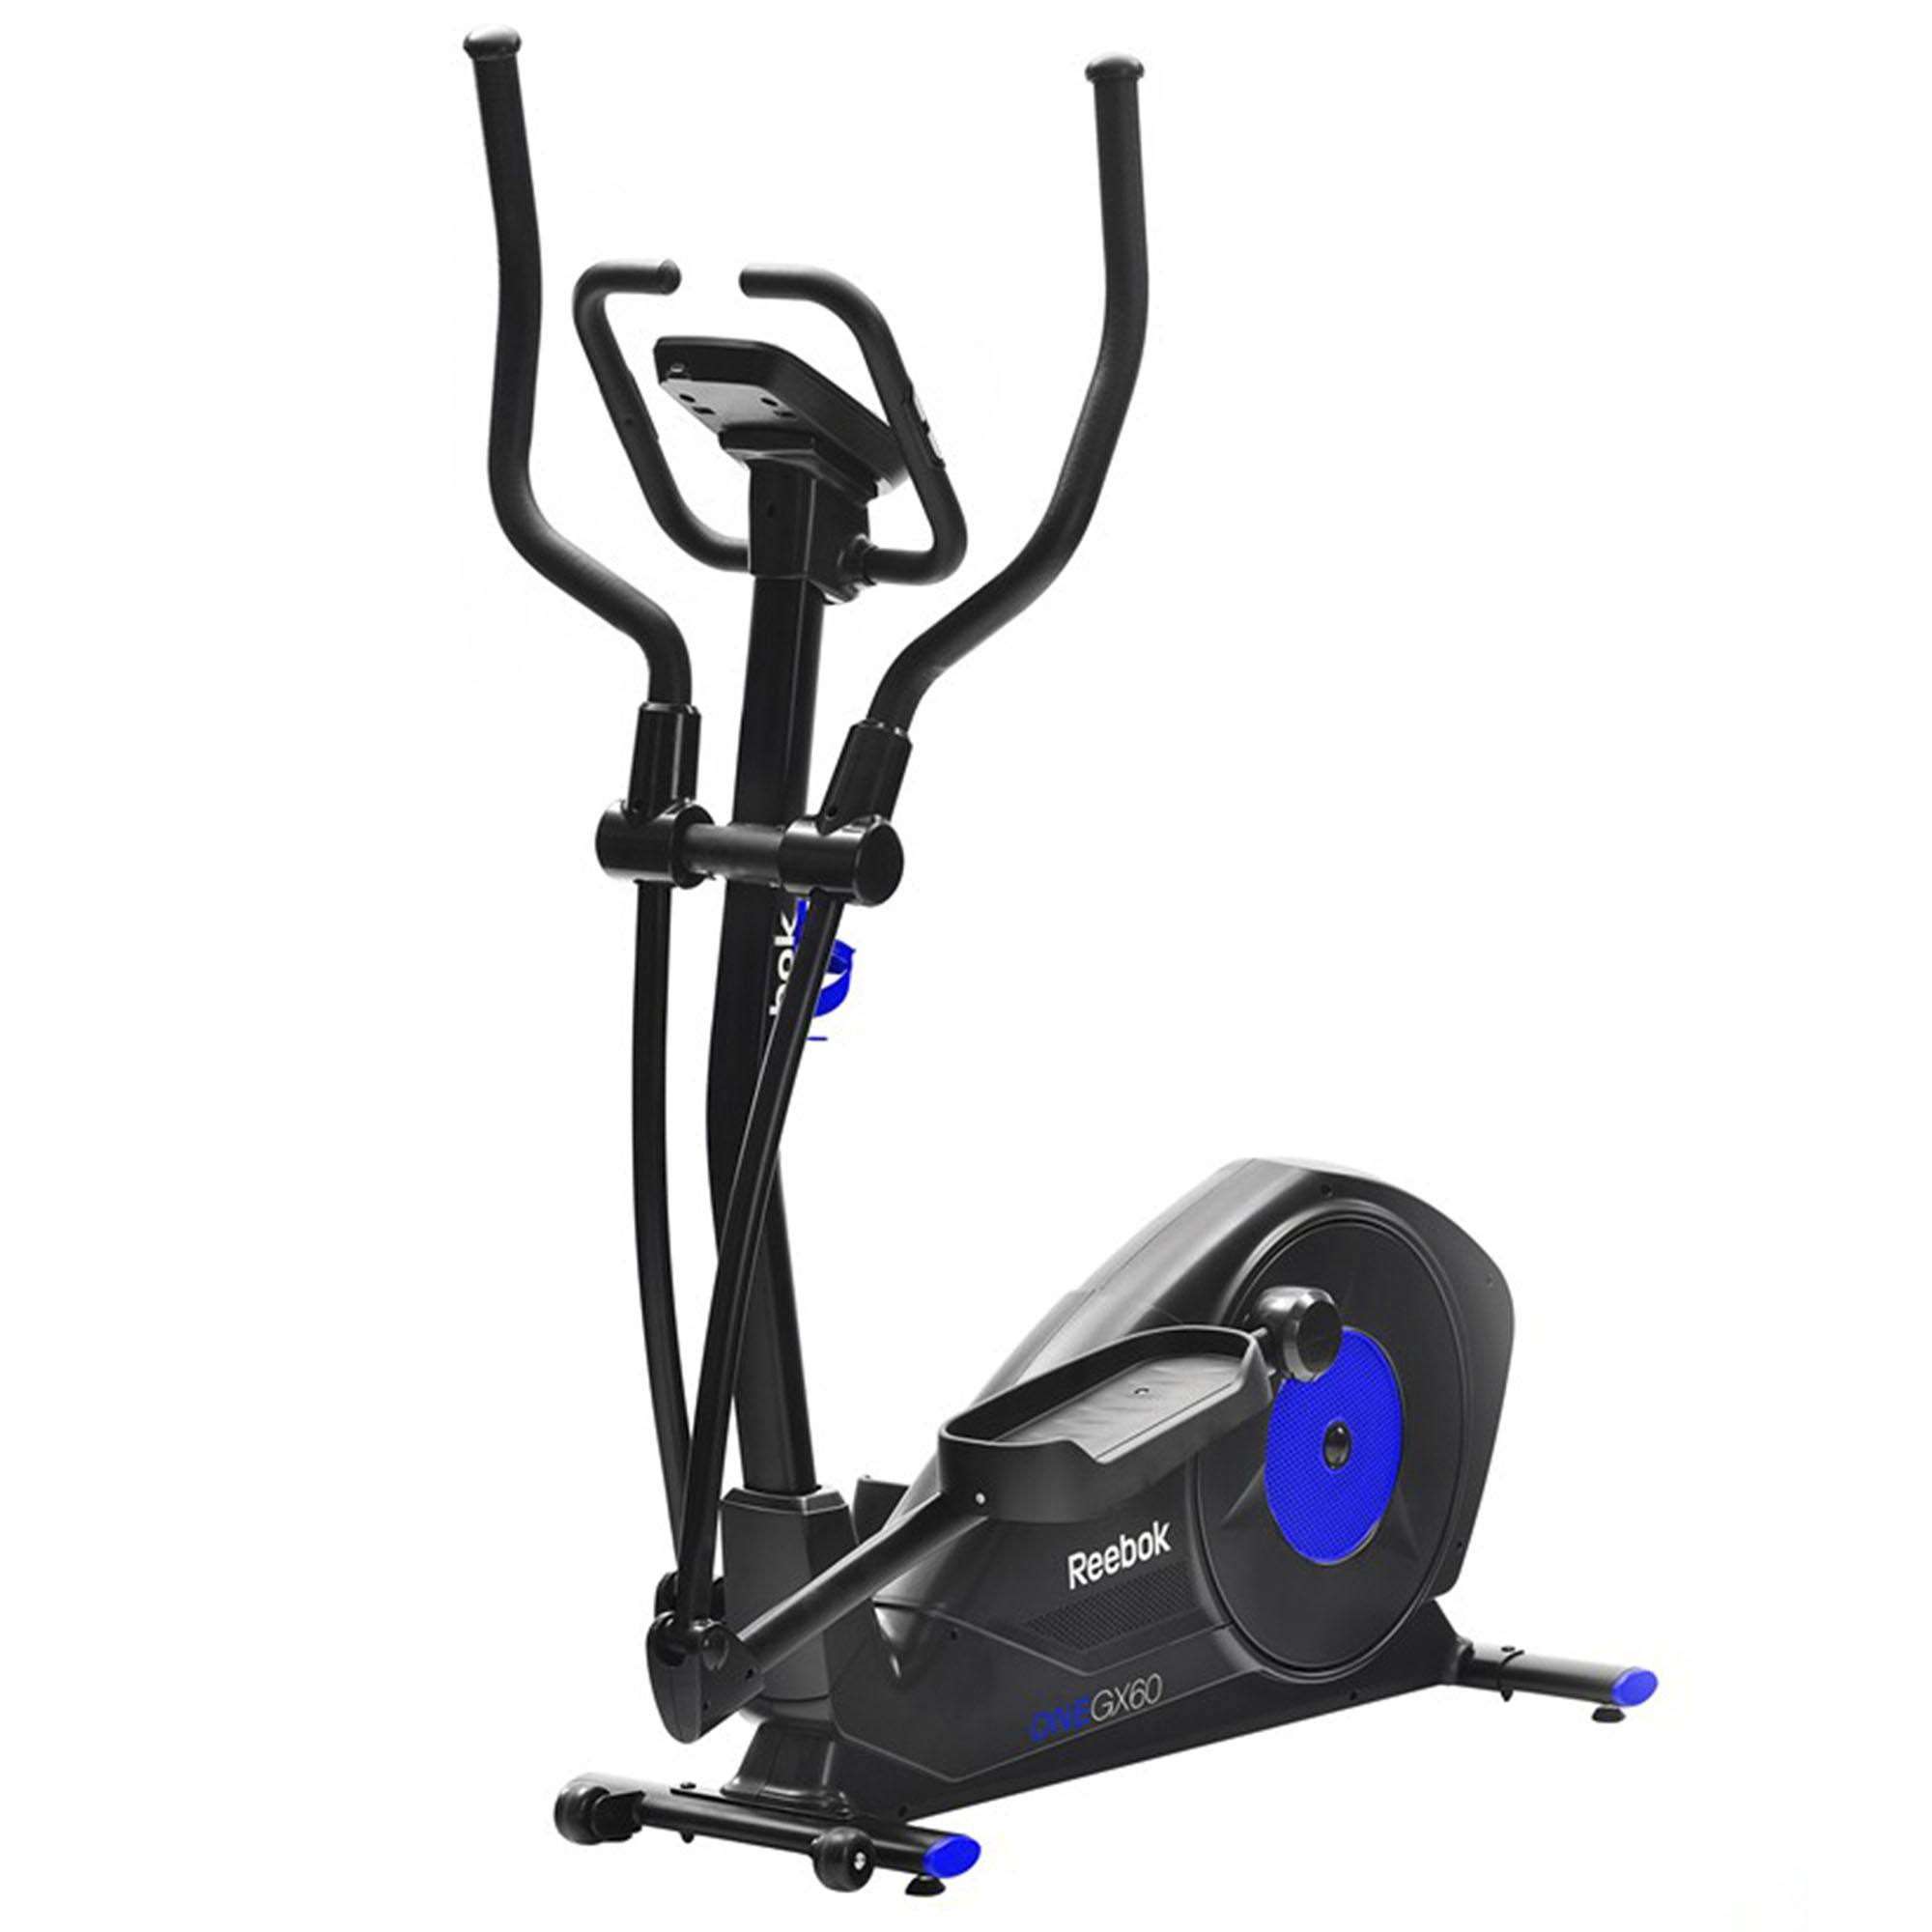 Gym Equipment Wholesale Price In India 91mobiles, Reebok